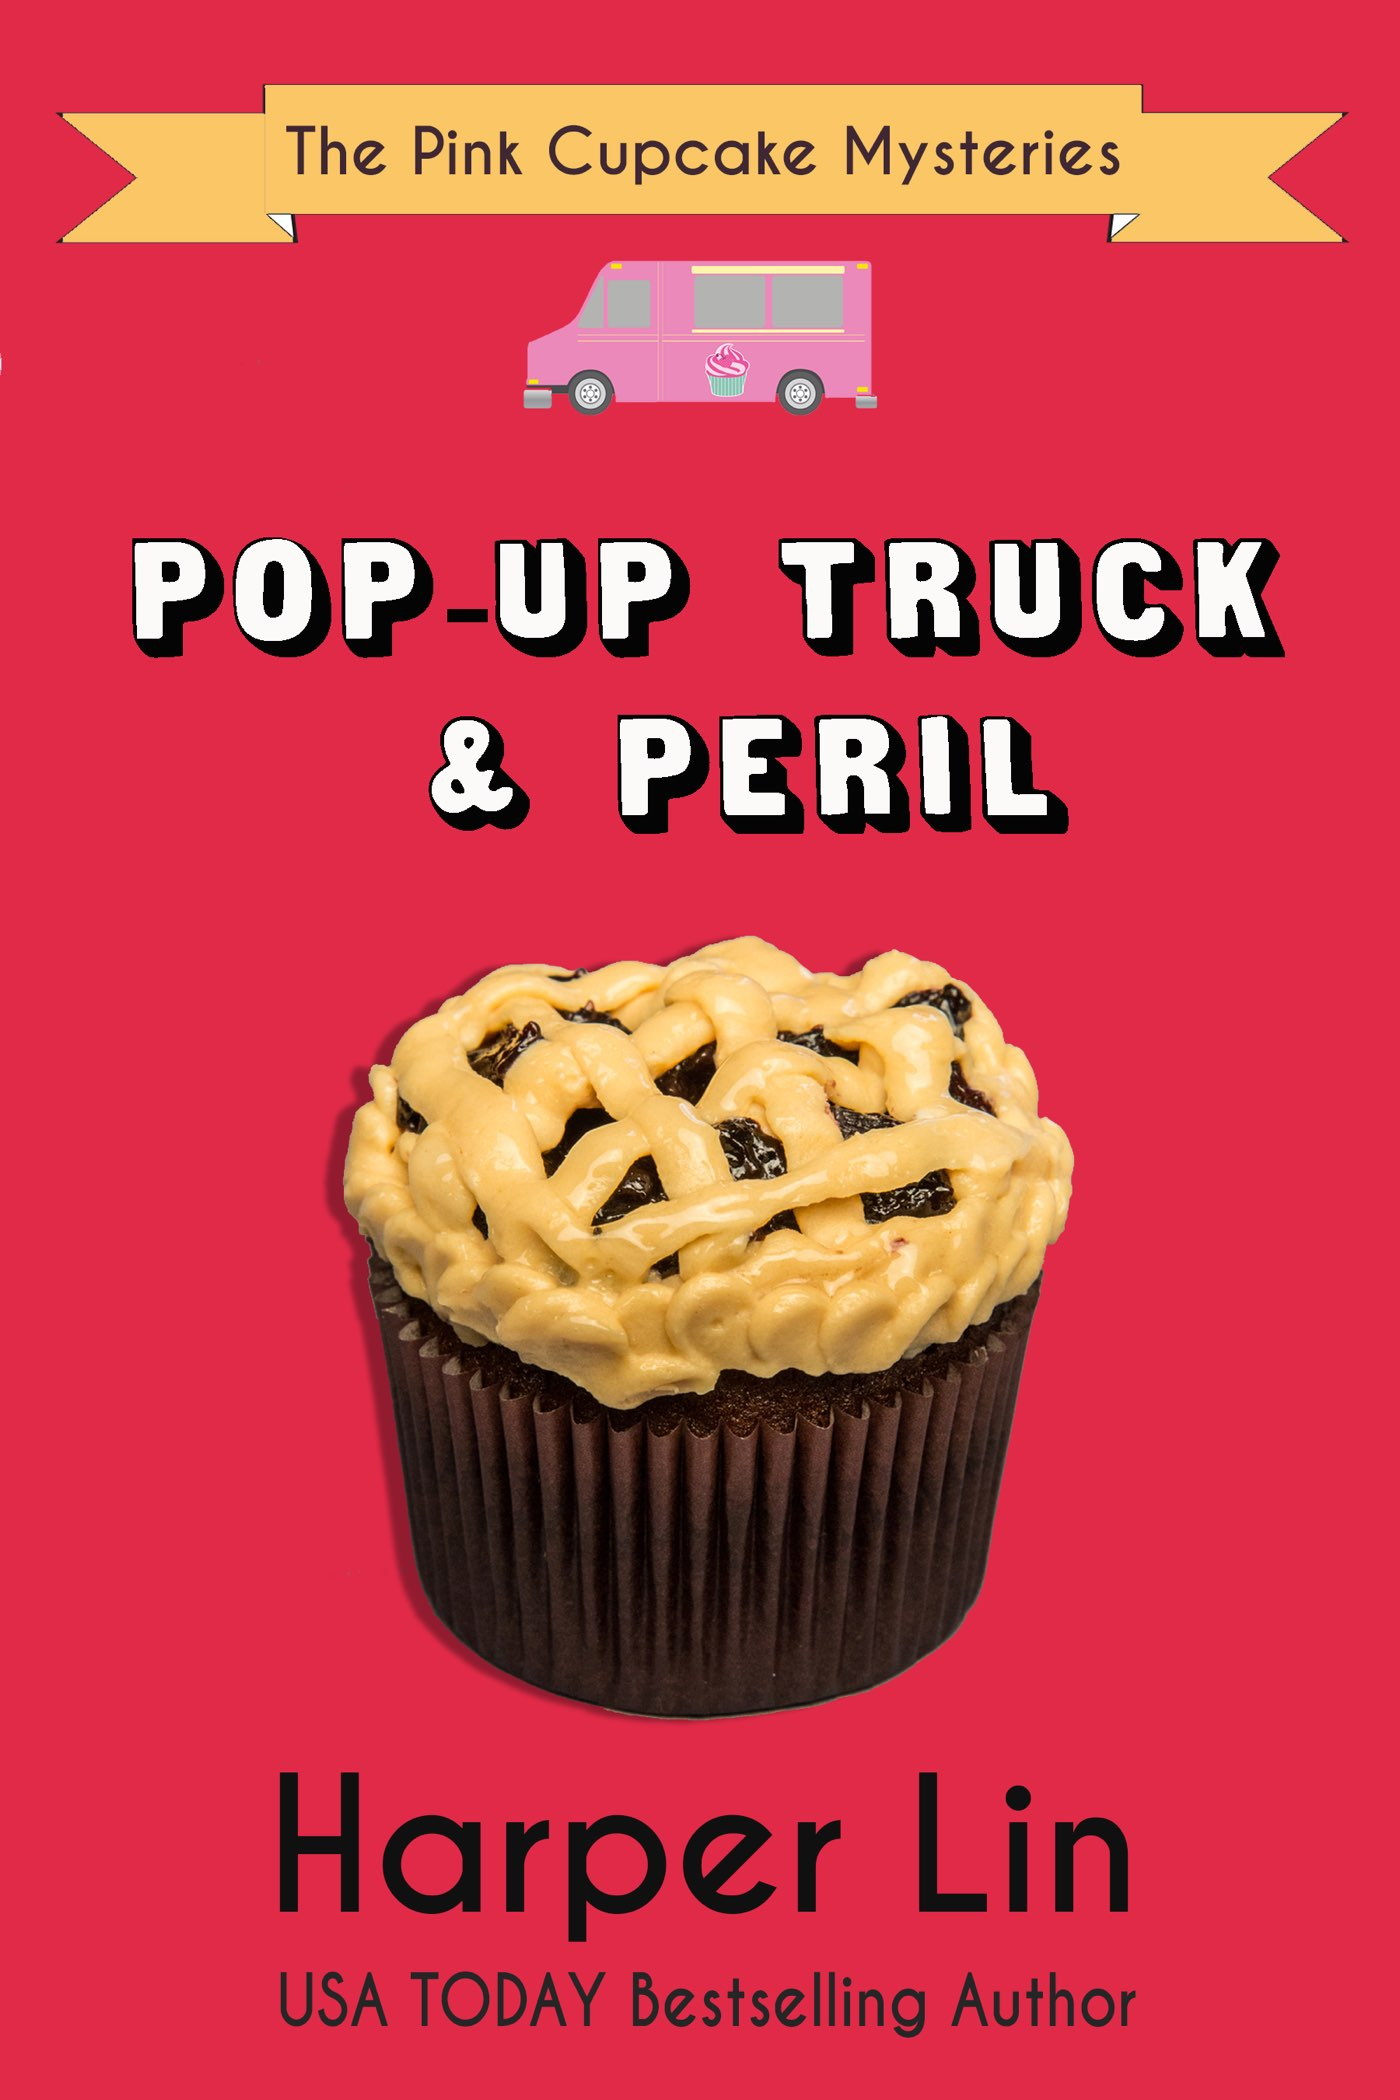 Pop-Up-Truck-and-Peril-Generic